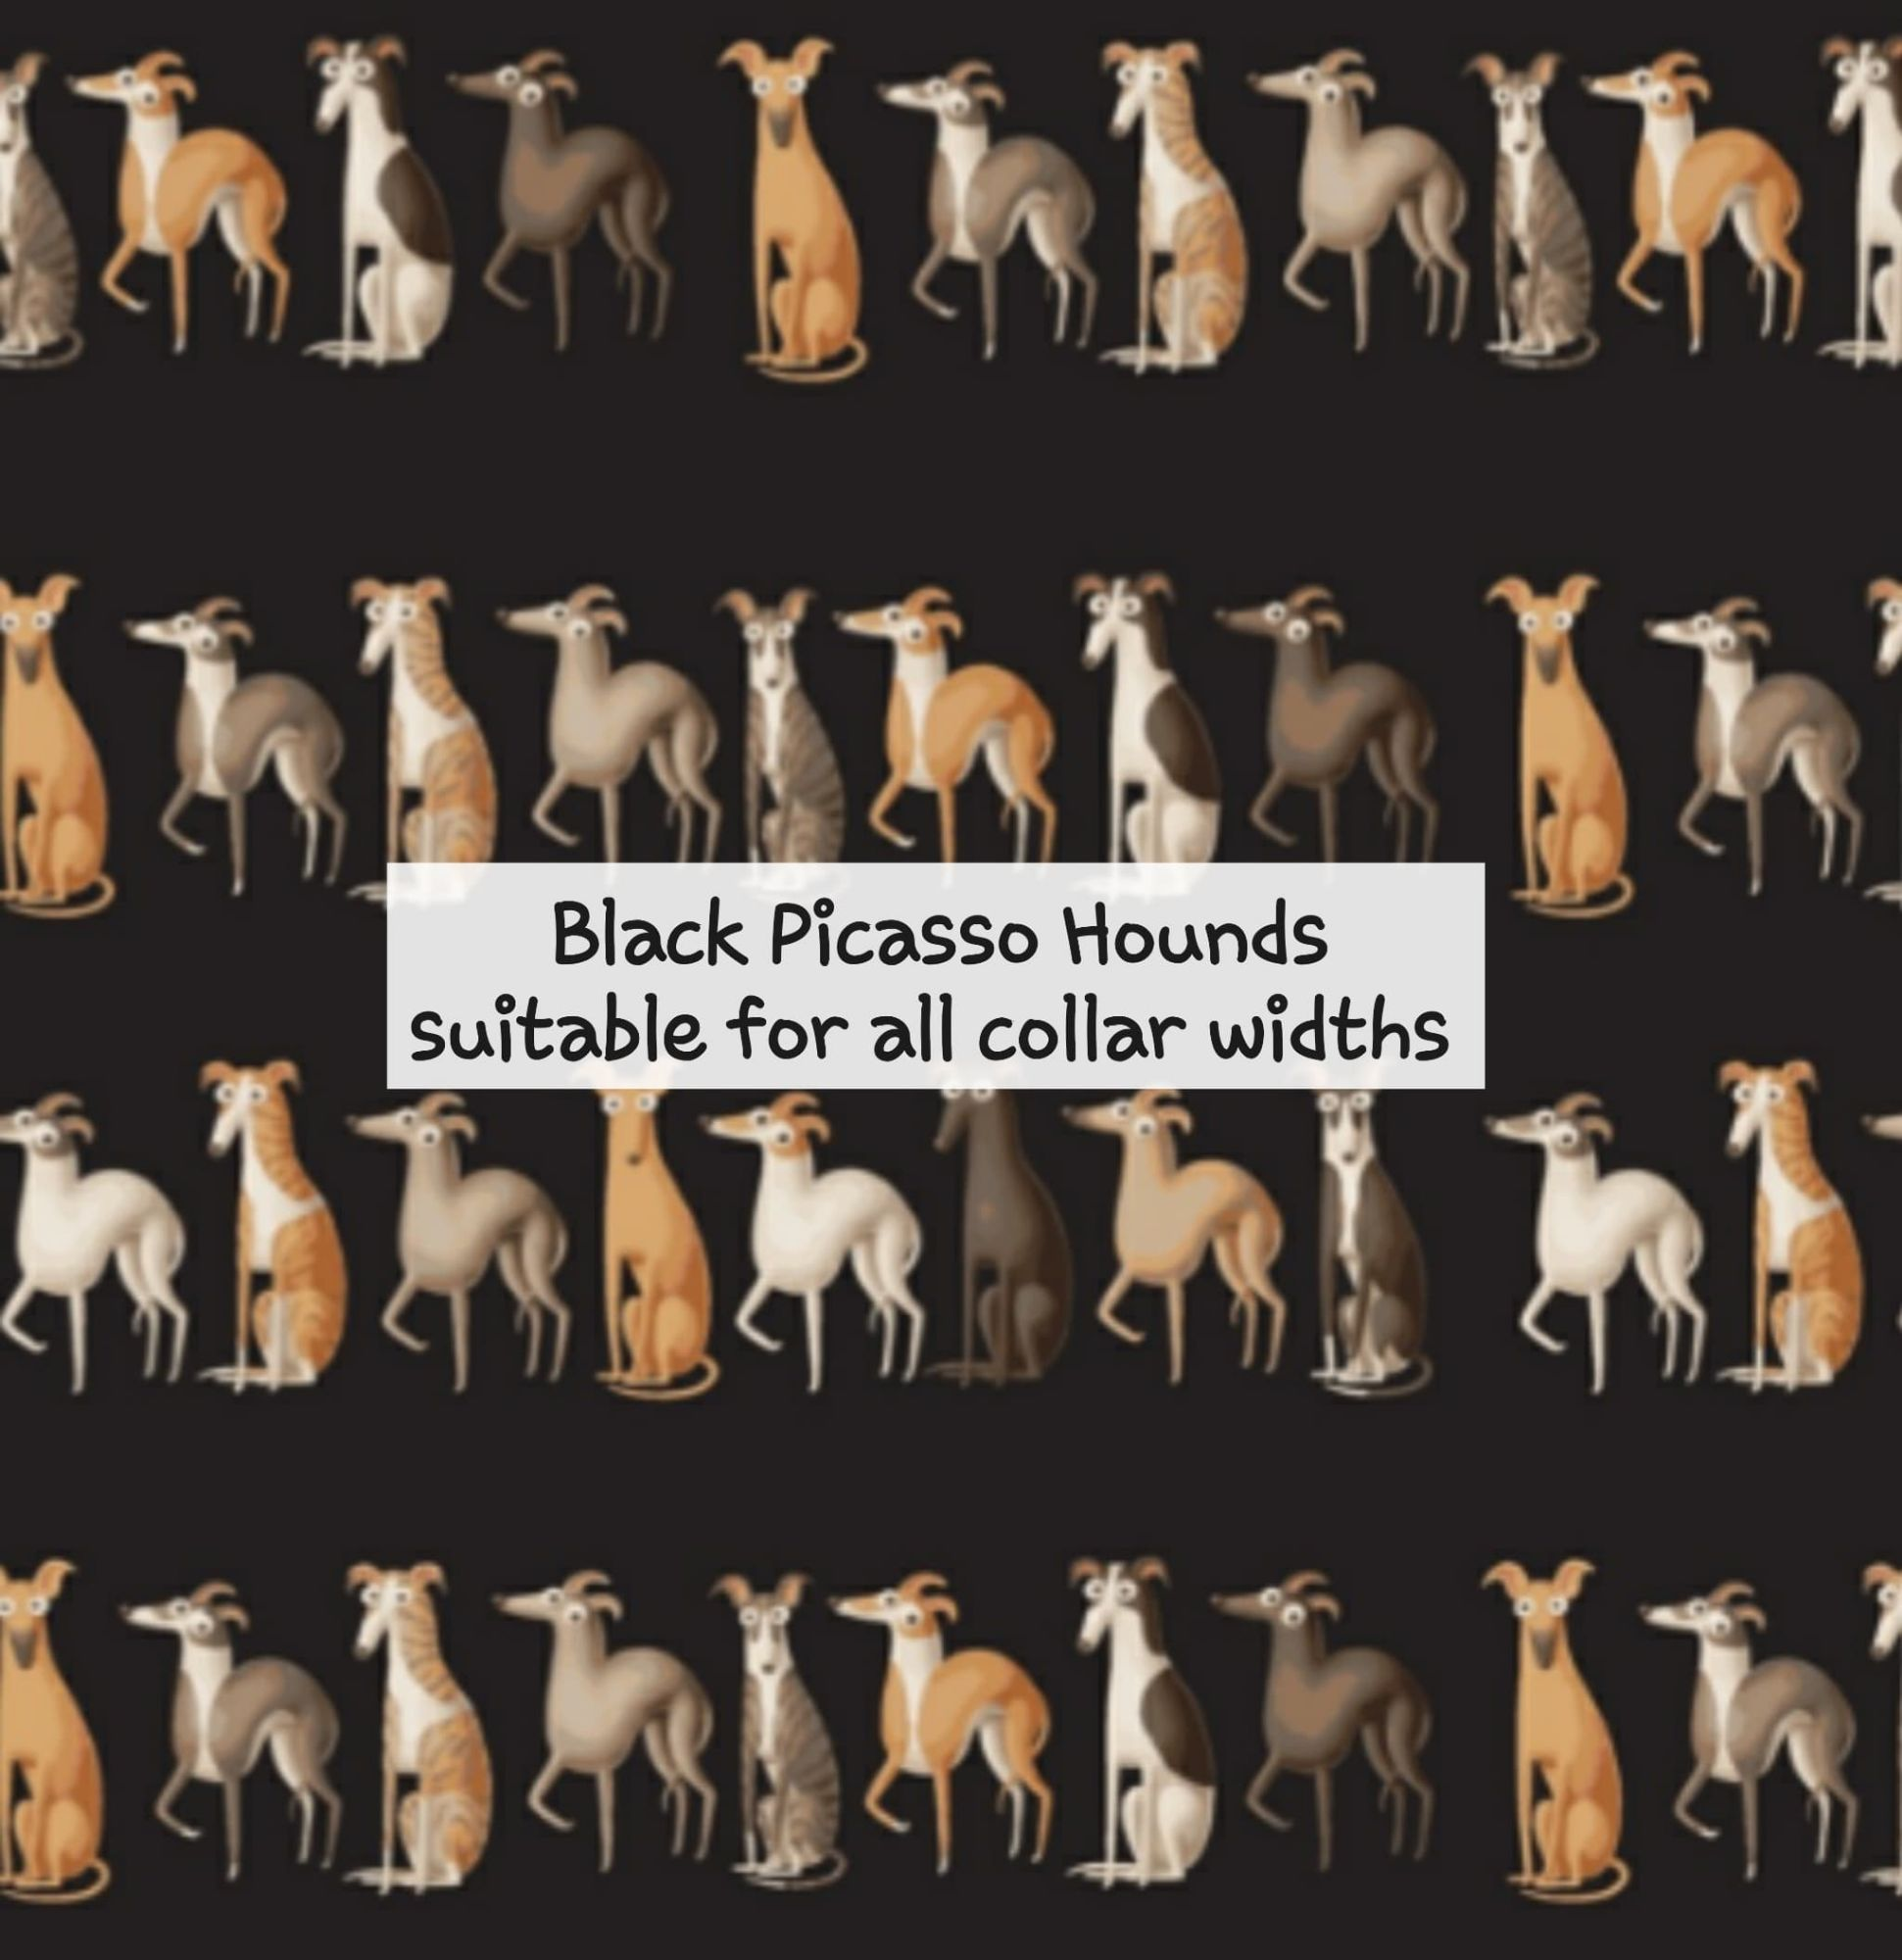 Black Picasso Hounds - Suitable for all collar widths